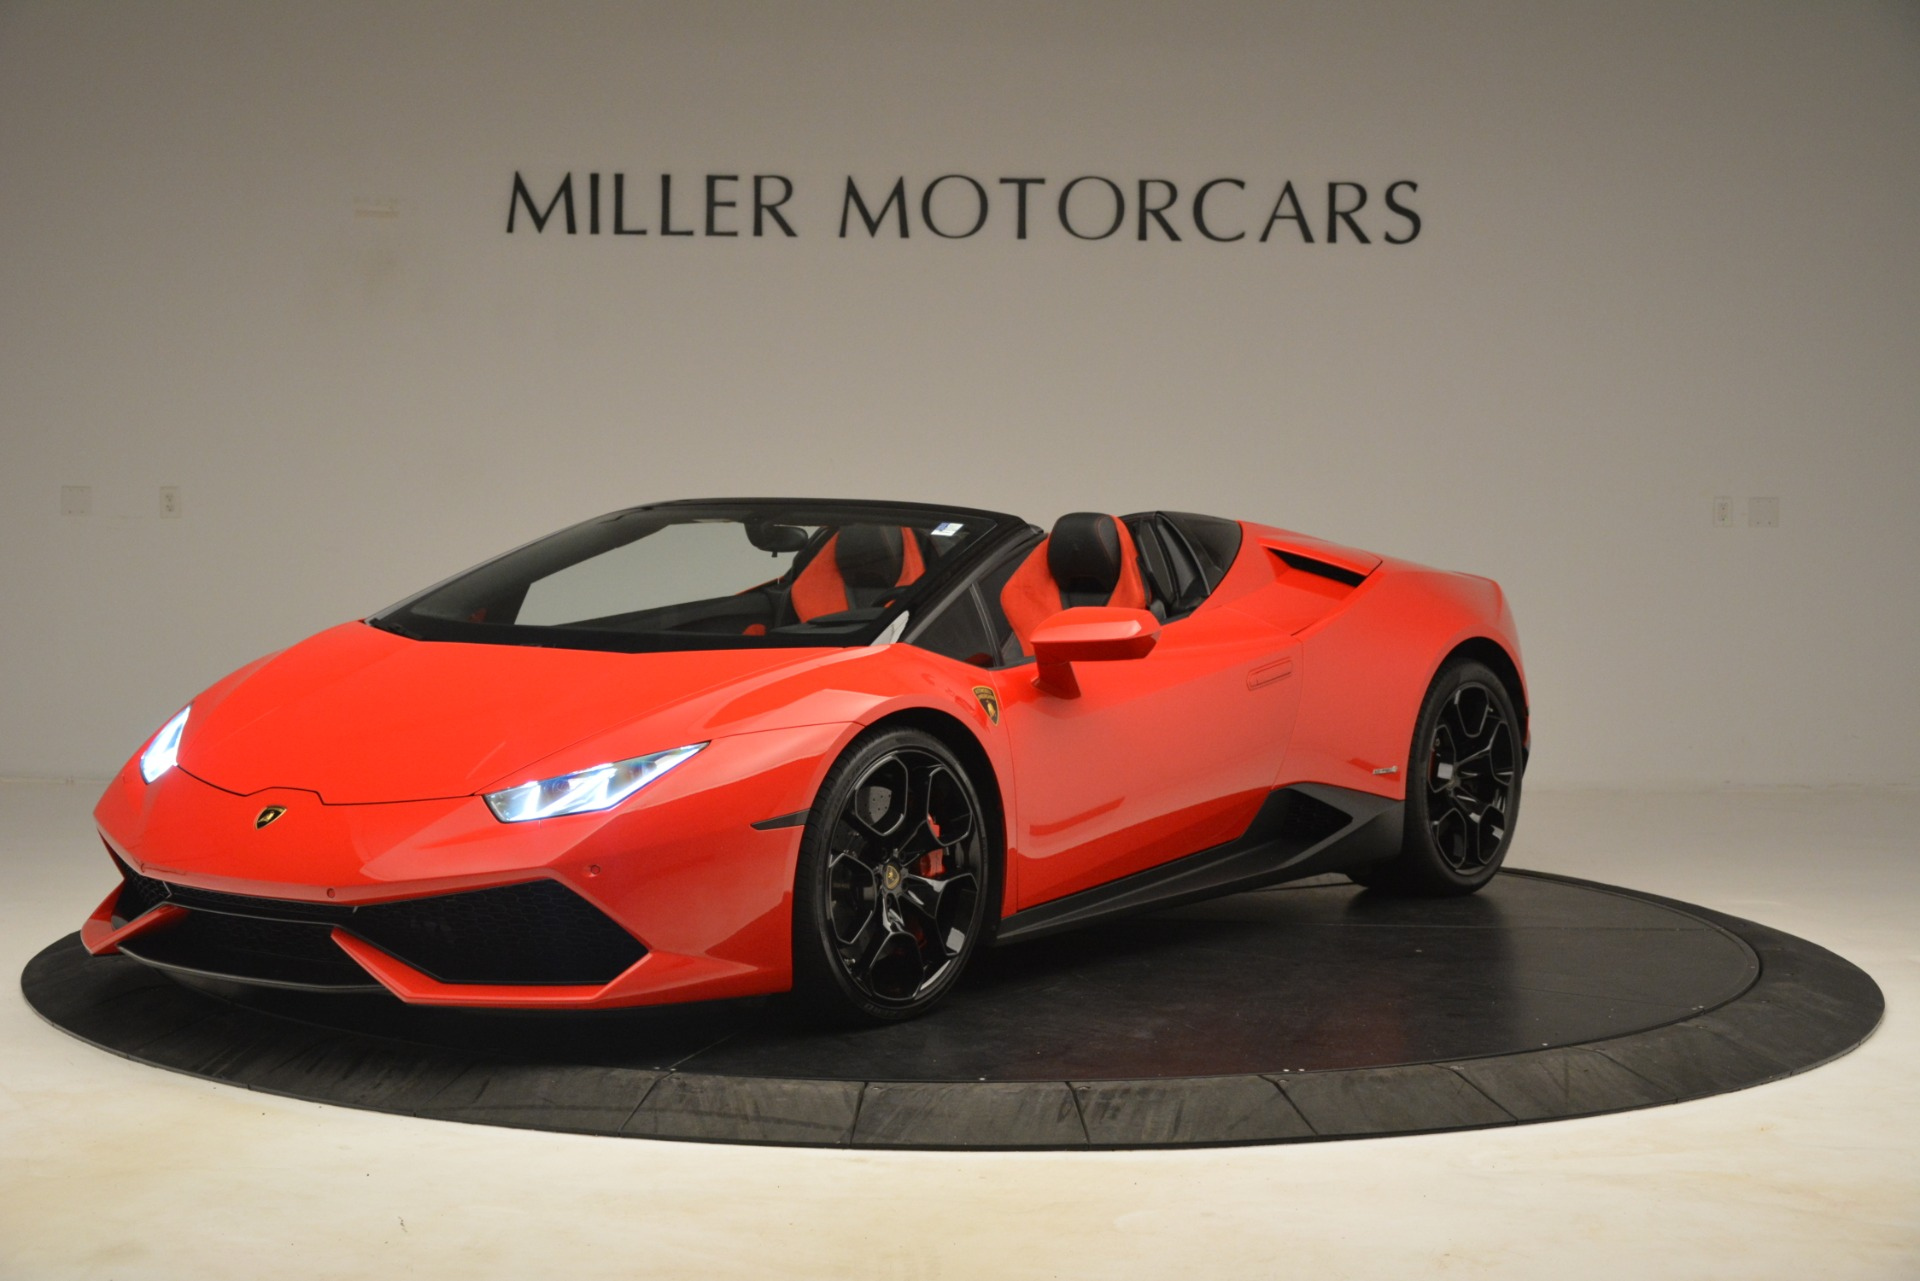 Used 2017 Lamborghini Huracan LP 610-4 Spyder For Sale In Greenwich, CT. Alfa Romeo of Greenwich, 7597 3270_main